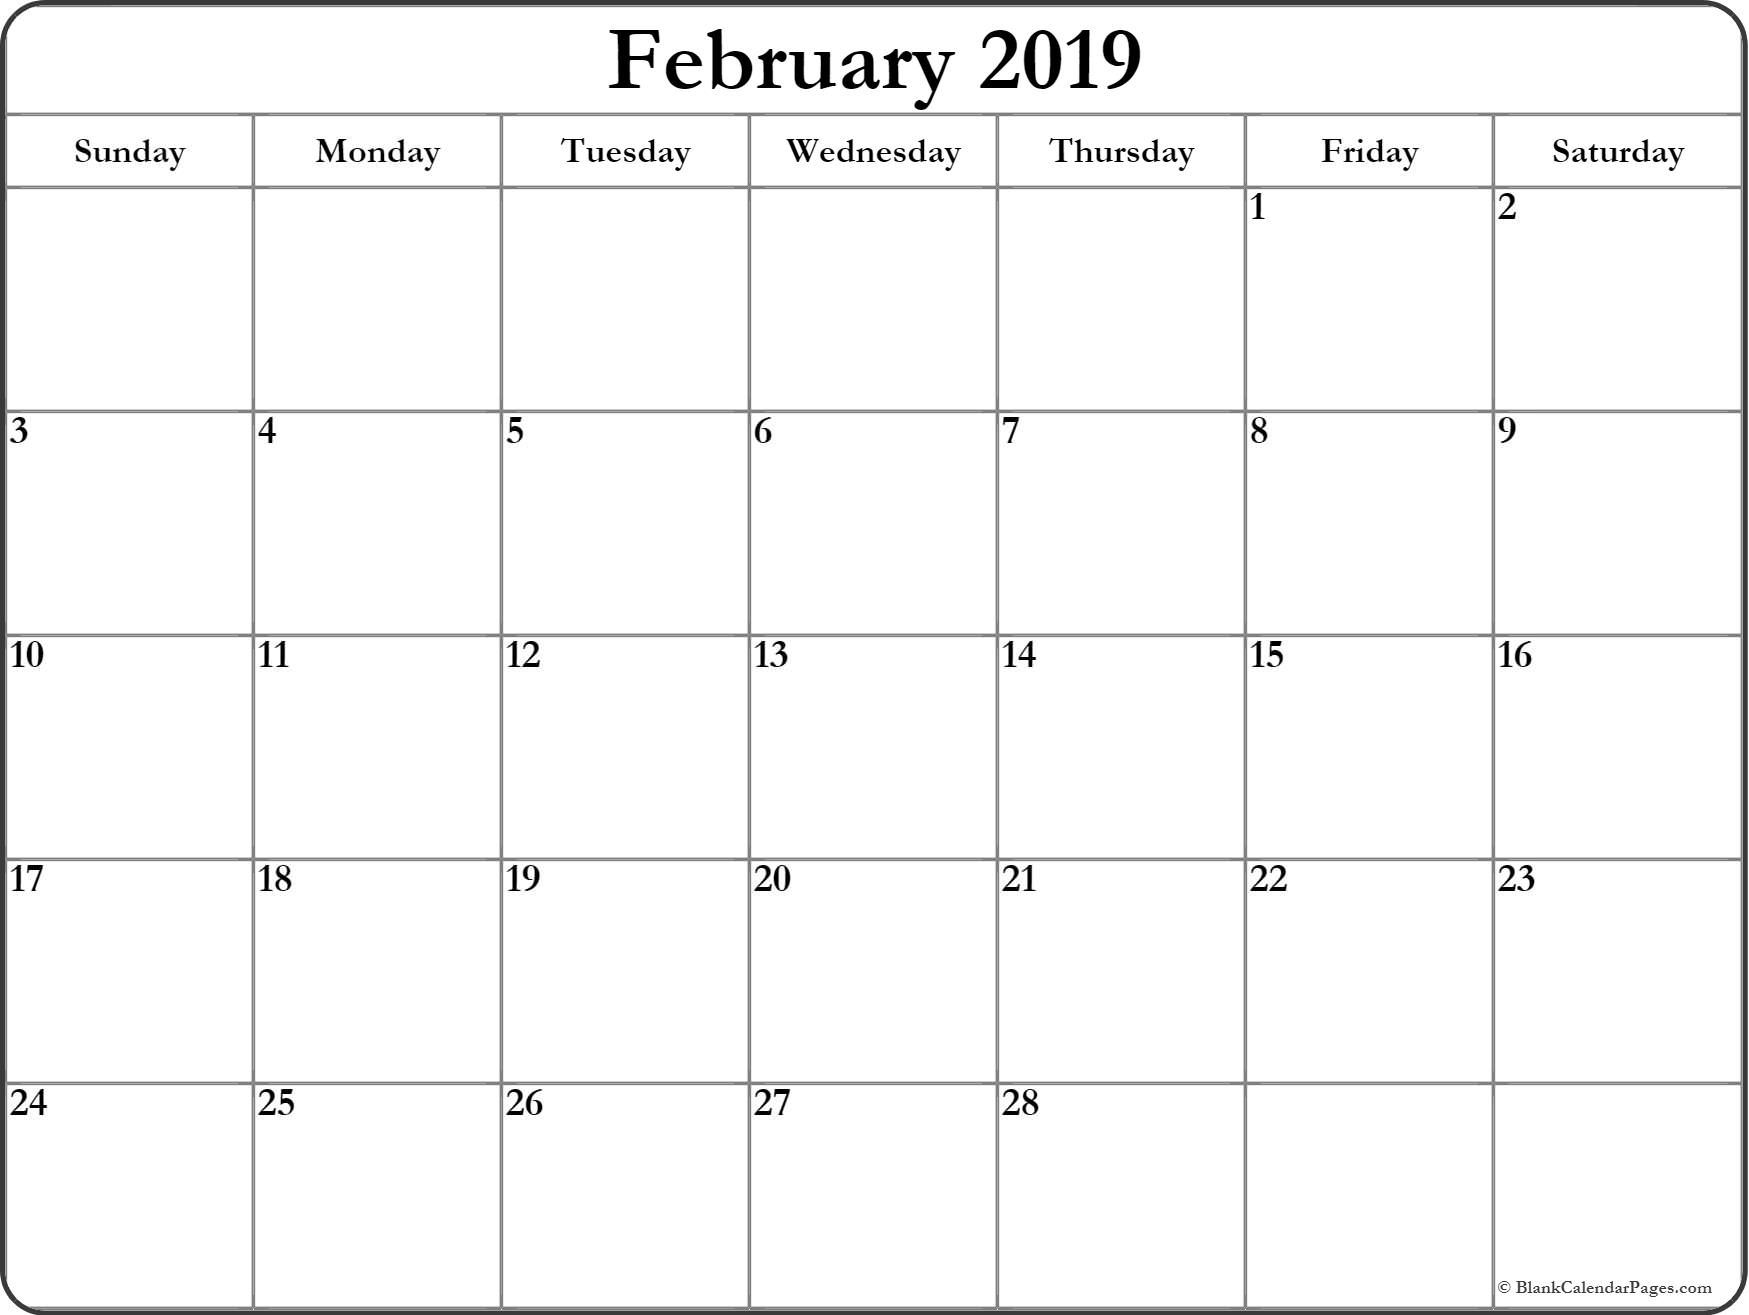 Free Printable February 2019 Monthly Calendar February blank calendar 2019 blank calendar #February #2019